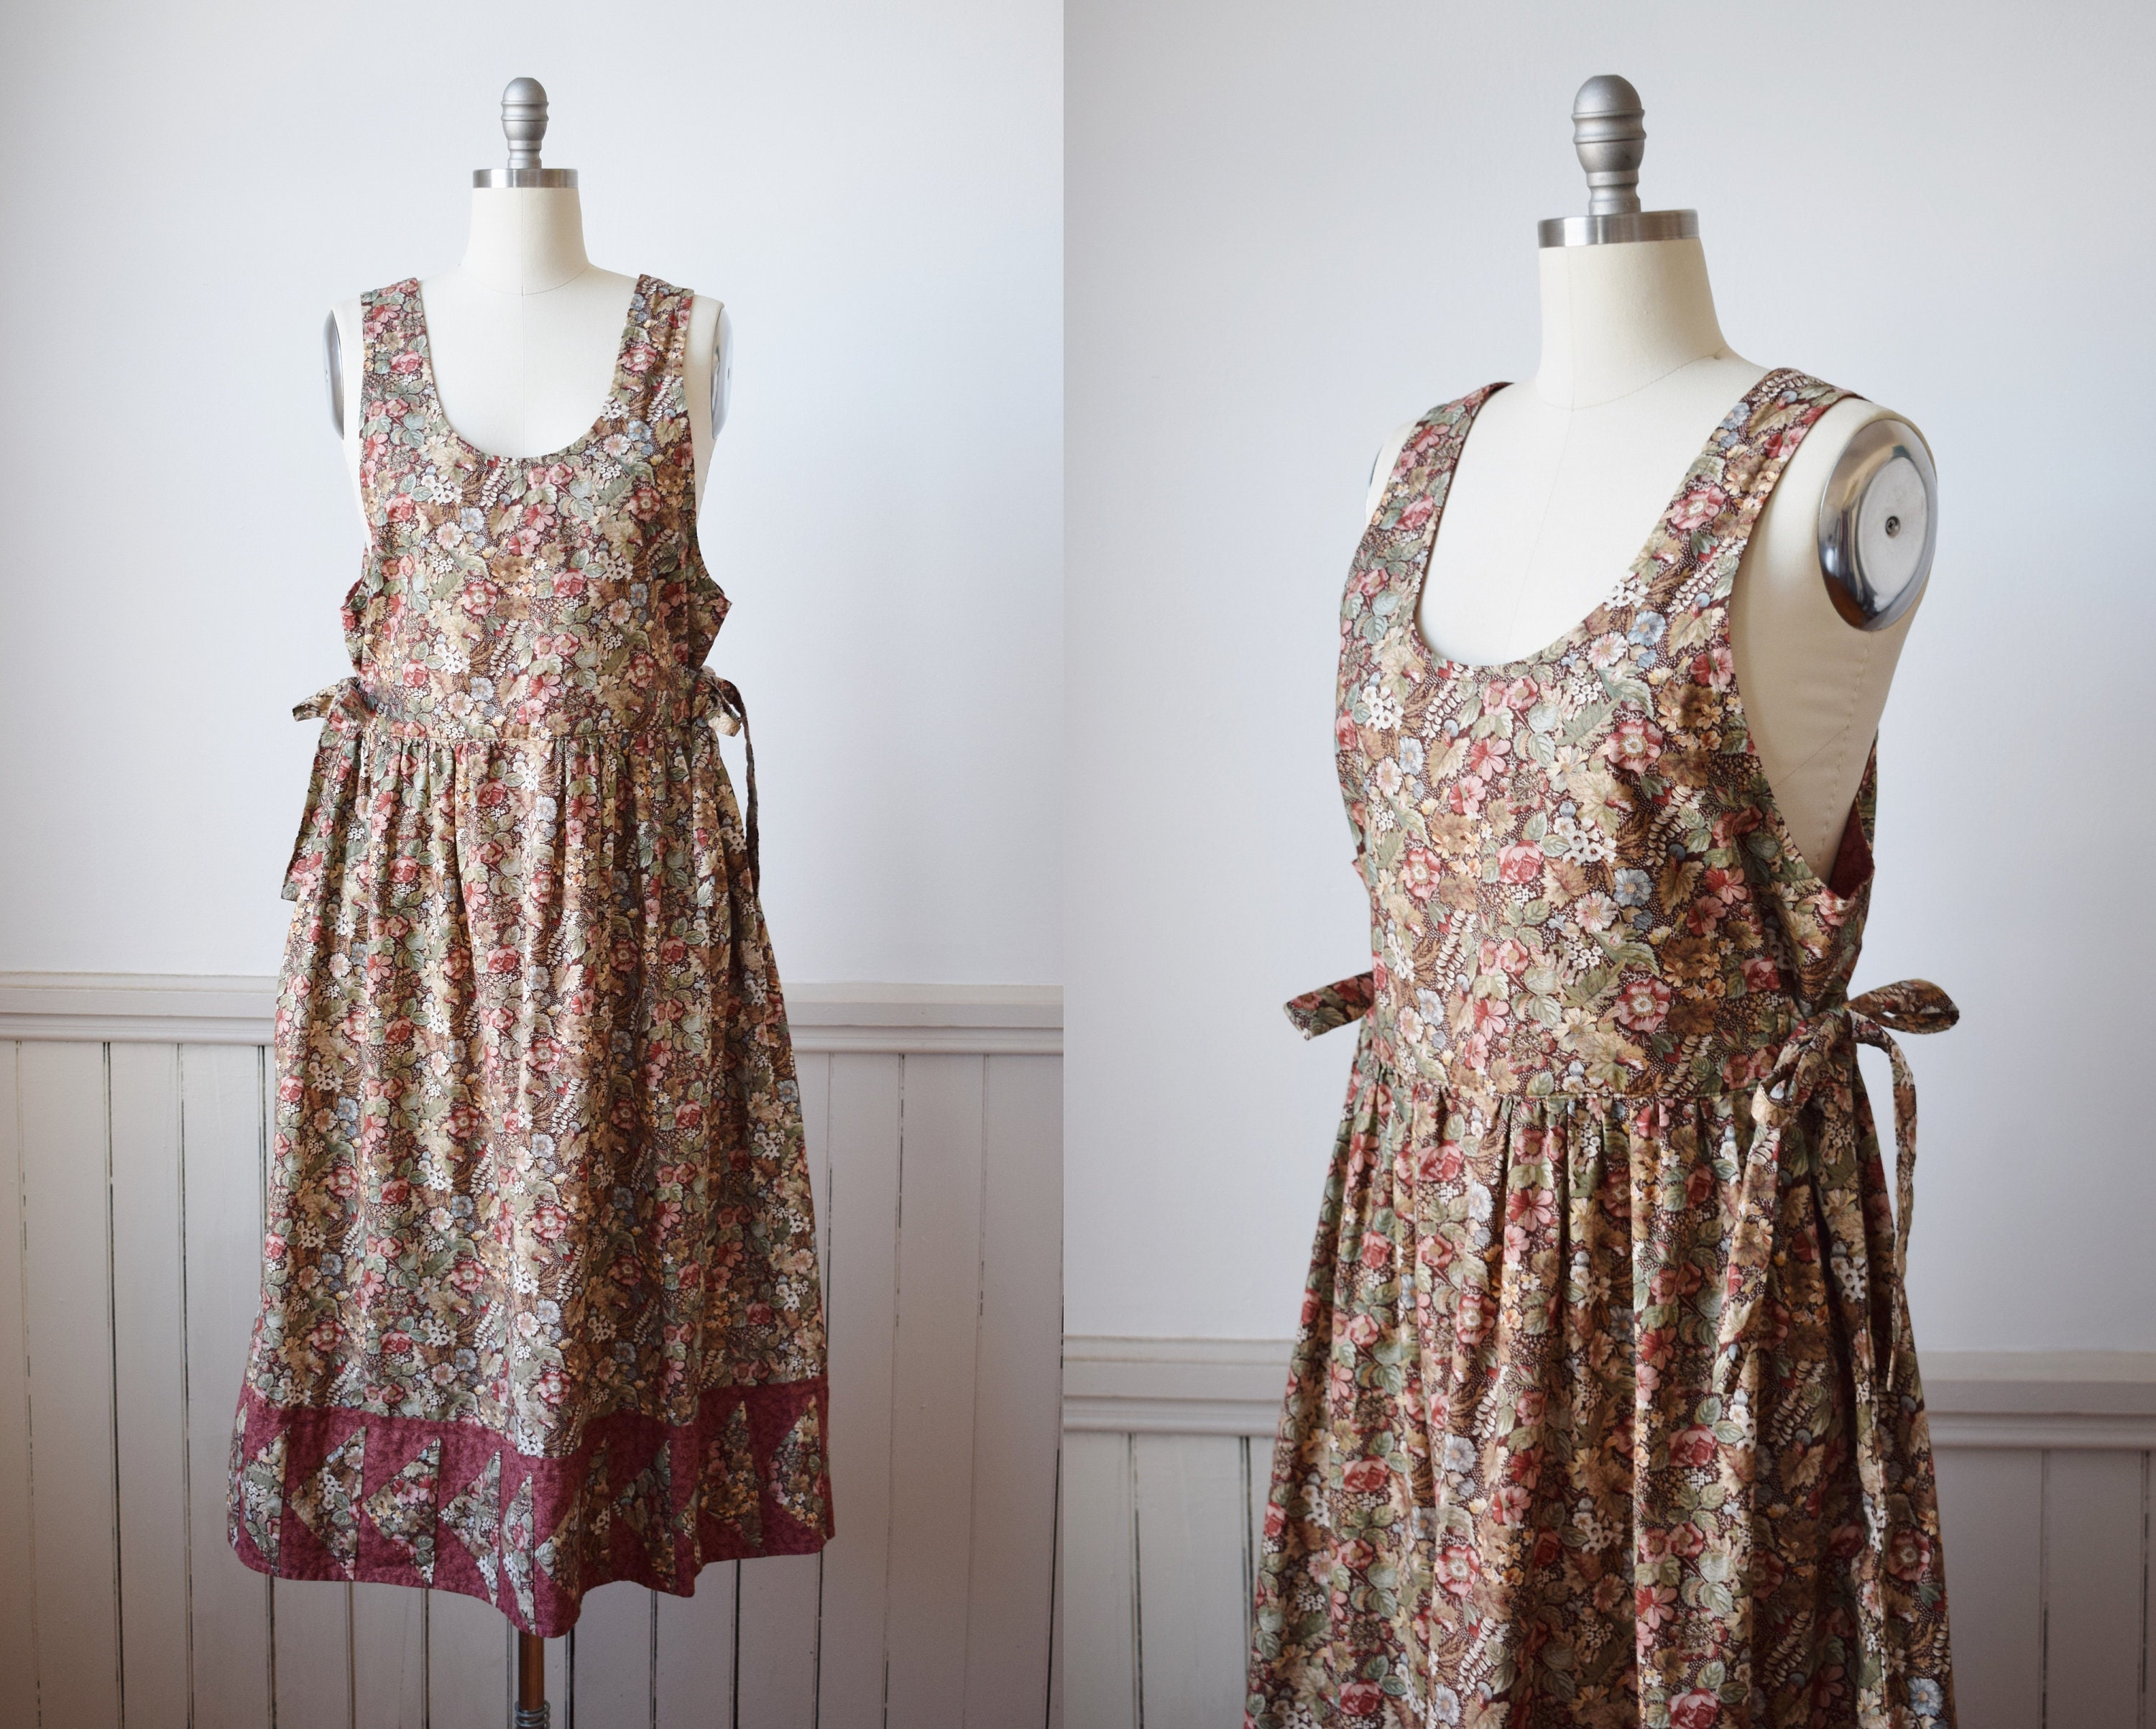 80s Dresses | Casual to Party Dresses Vintage Pinafore Dress With Quilted Hem  Os 1980S Floral Print Apron Tie Sides $25.00 AT vintagedancer.com